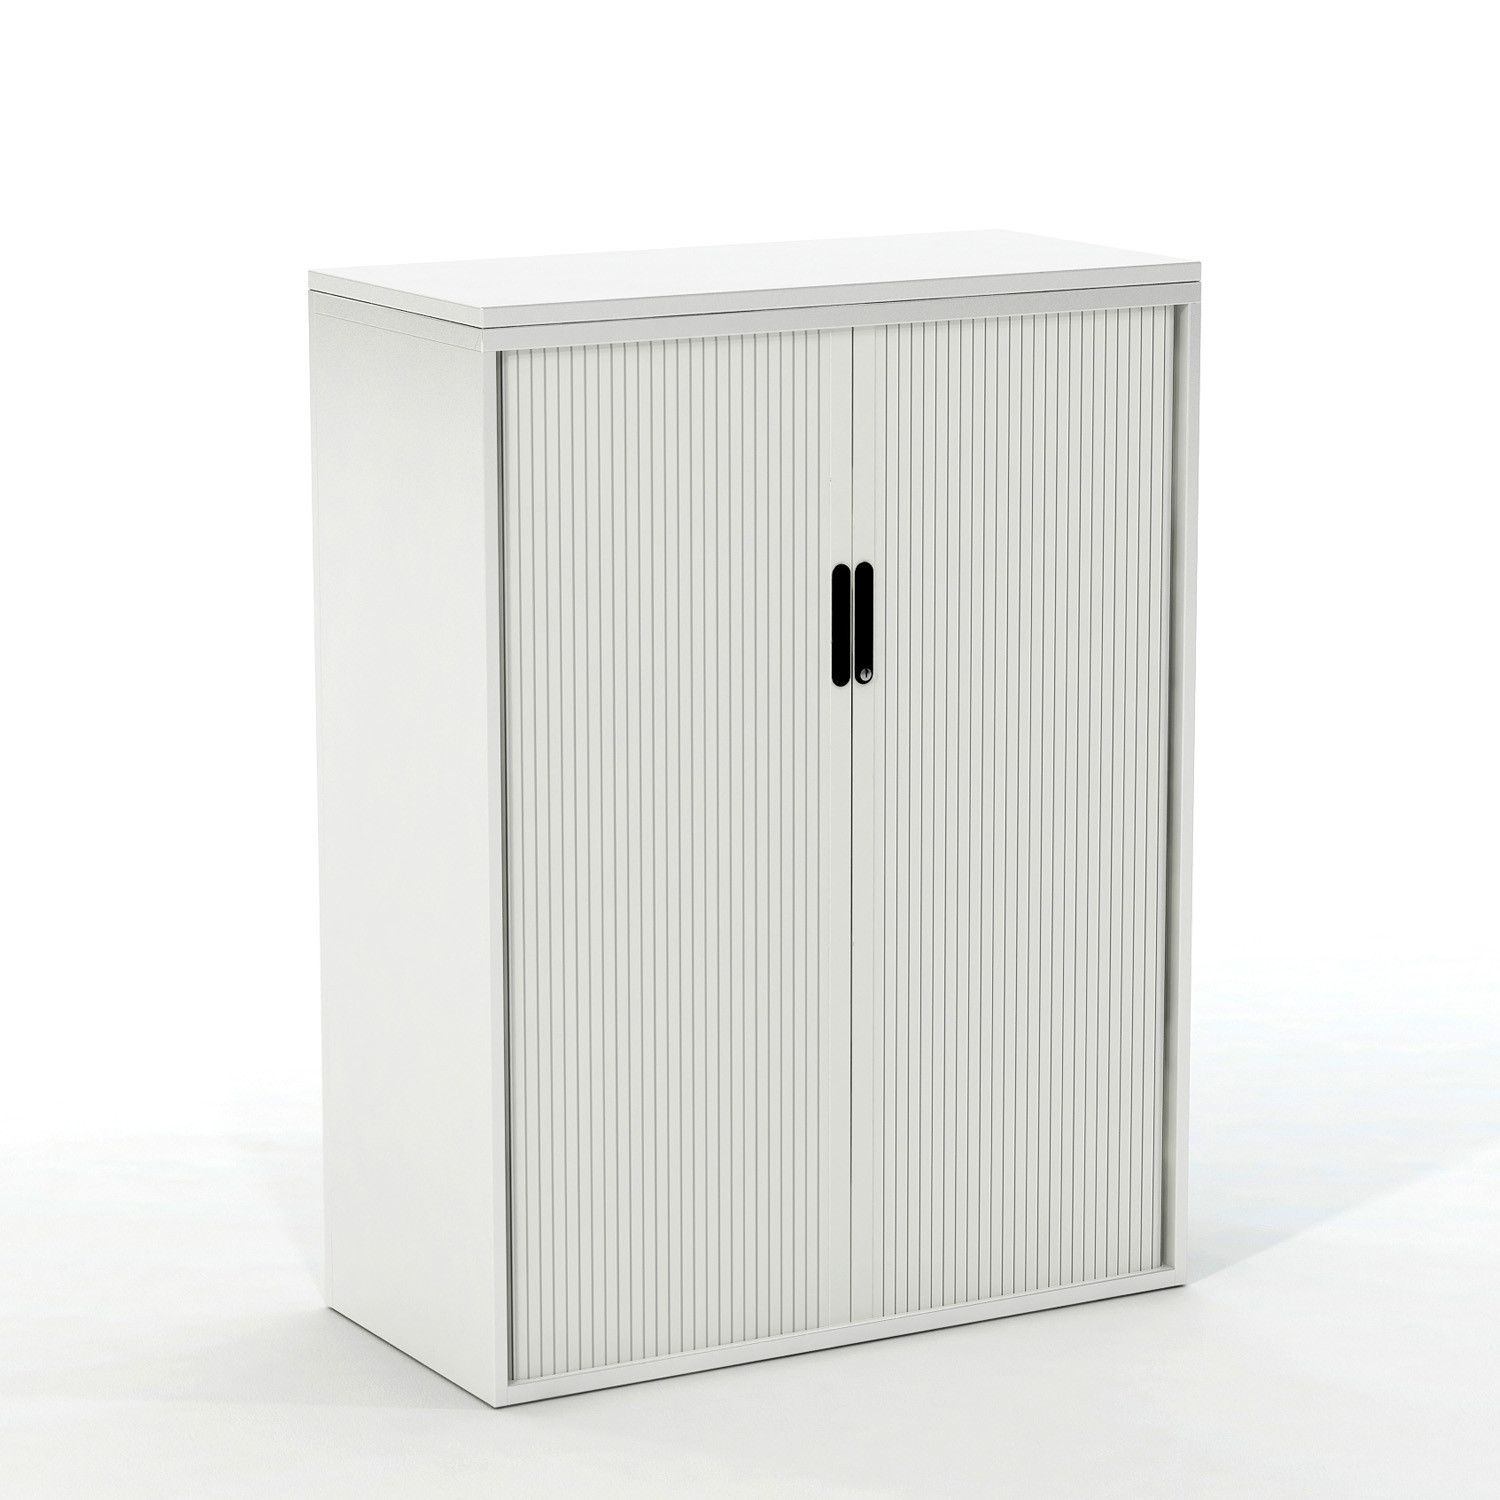 400 Series Cupboard by KI